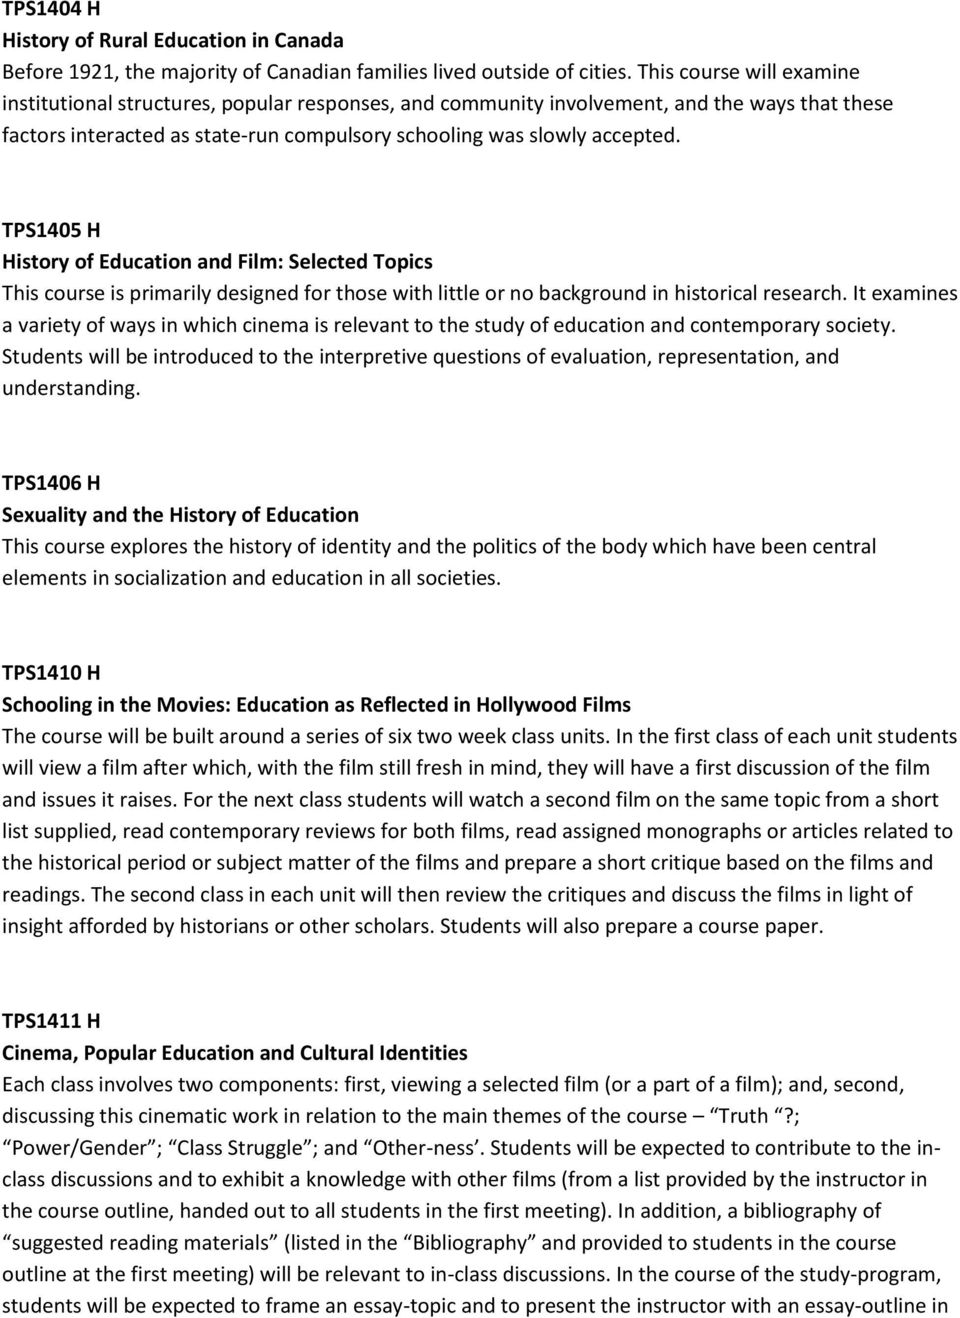 TPS1405 H History of Education and Film: Selected Topics This course is primarily designed for those with little or no background in historical research.